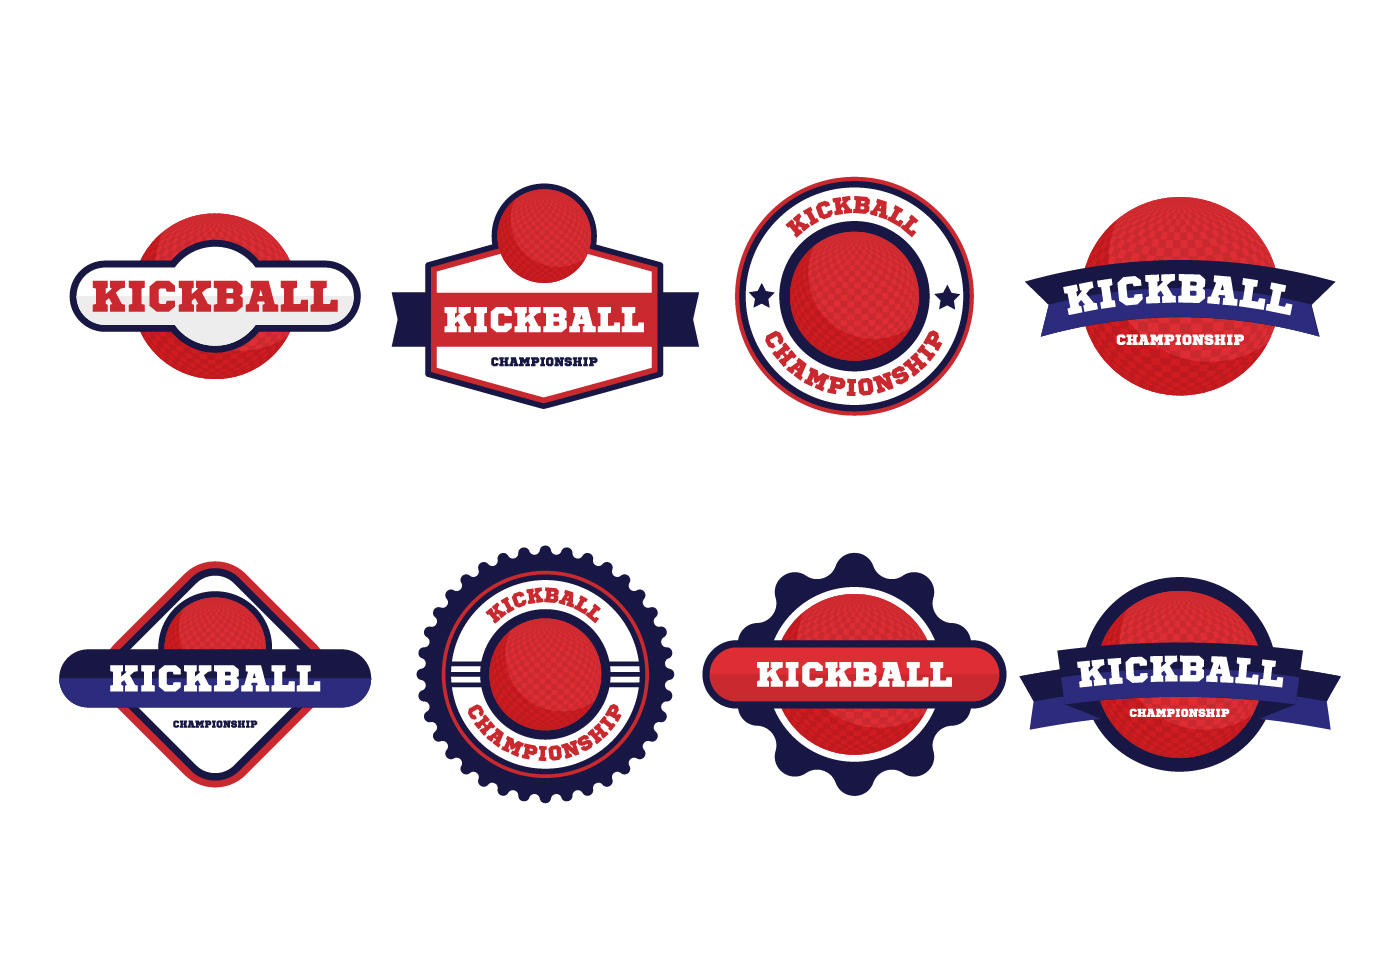 Kickball Free Vector Art.